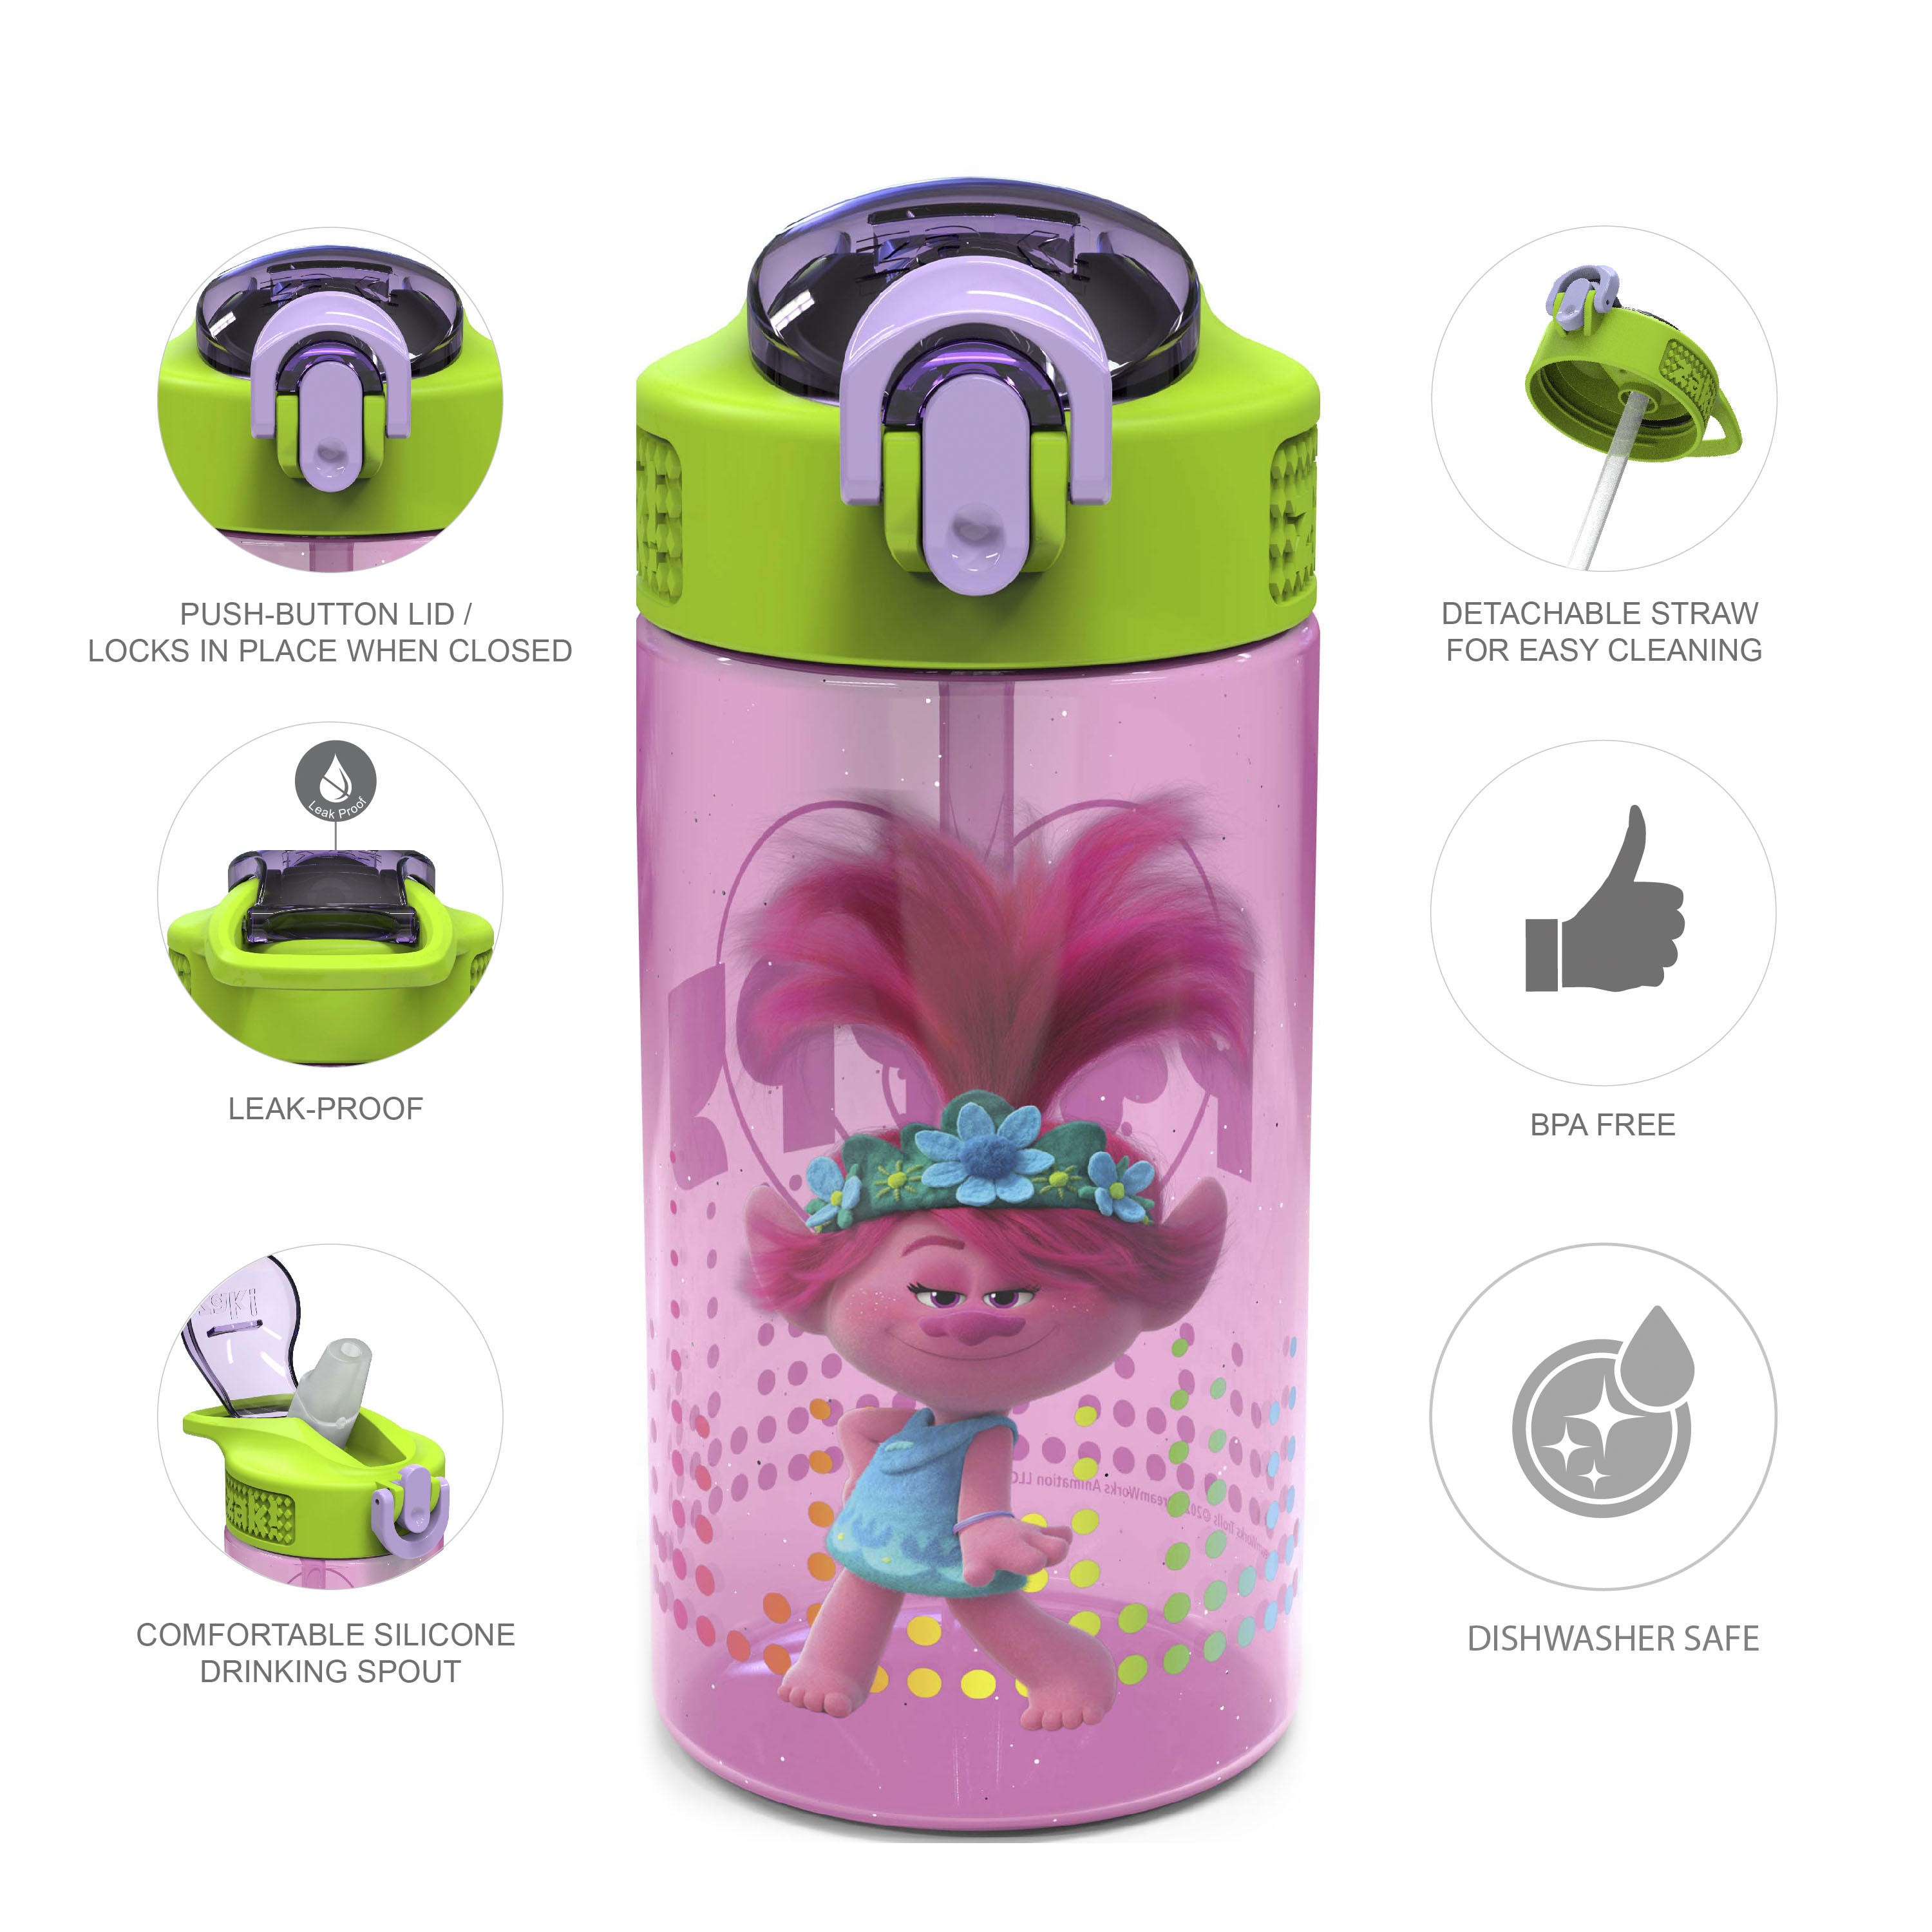 Trolls 2 Movie 16 ounce Reusable Plastic Water Bottle with Straw, Poppy, 2-piece set slideshow image 6